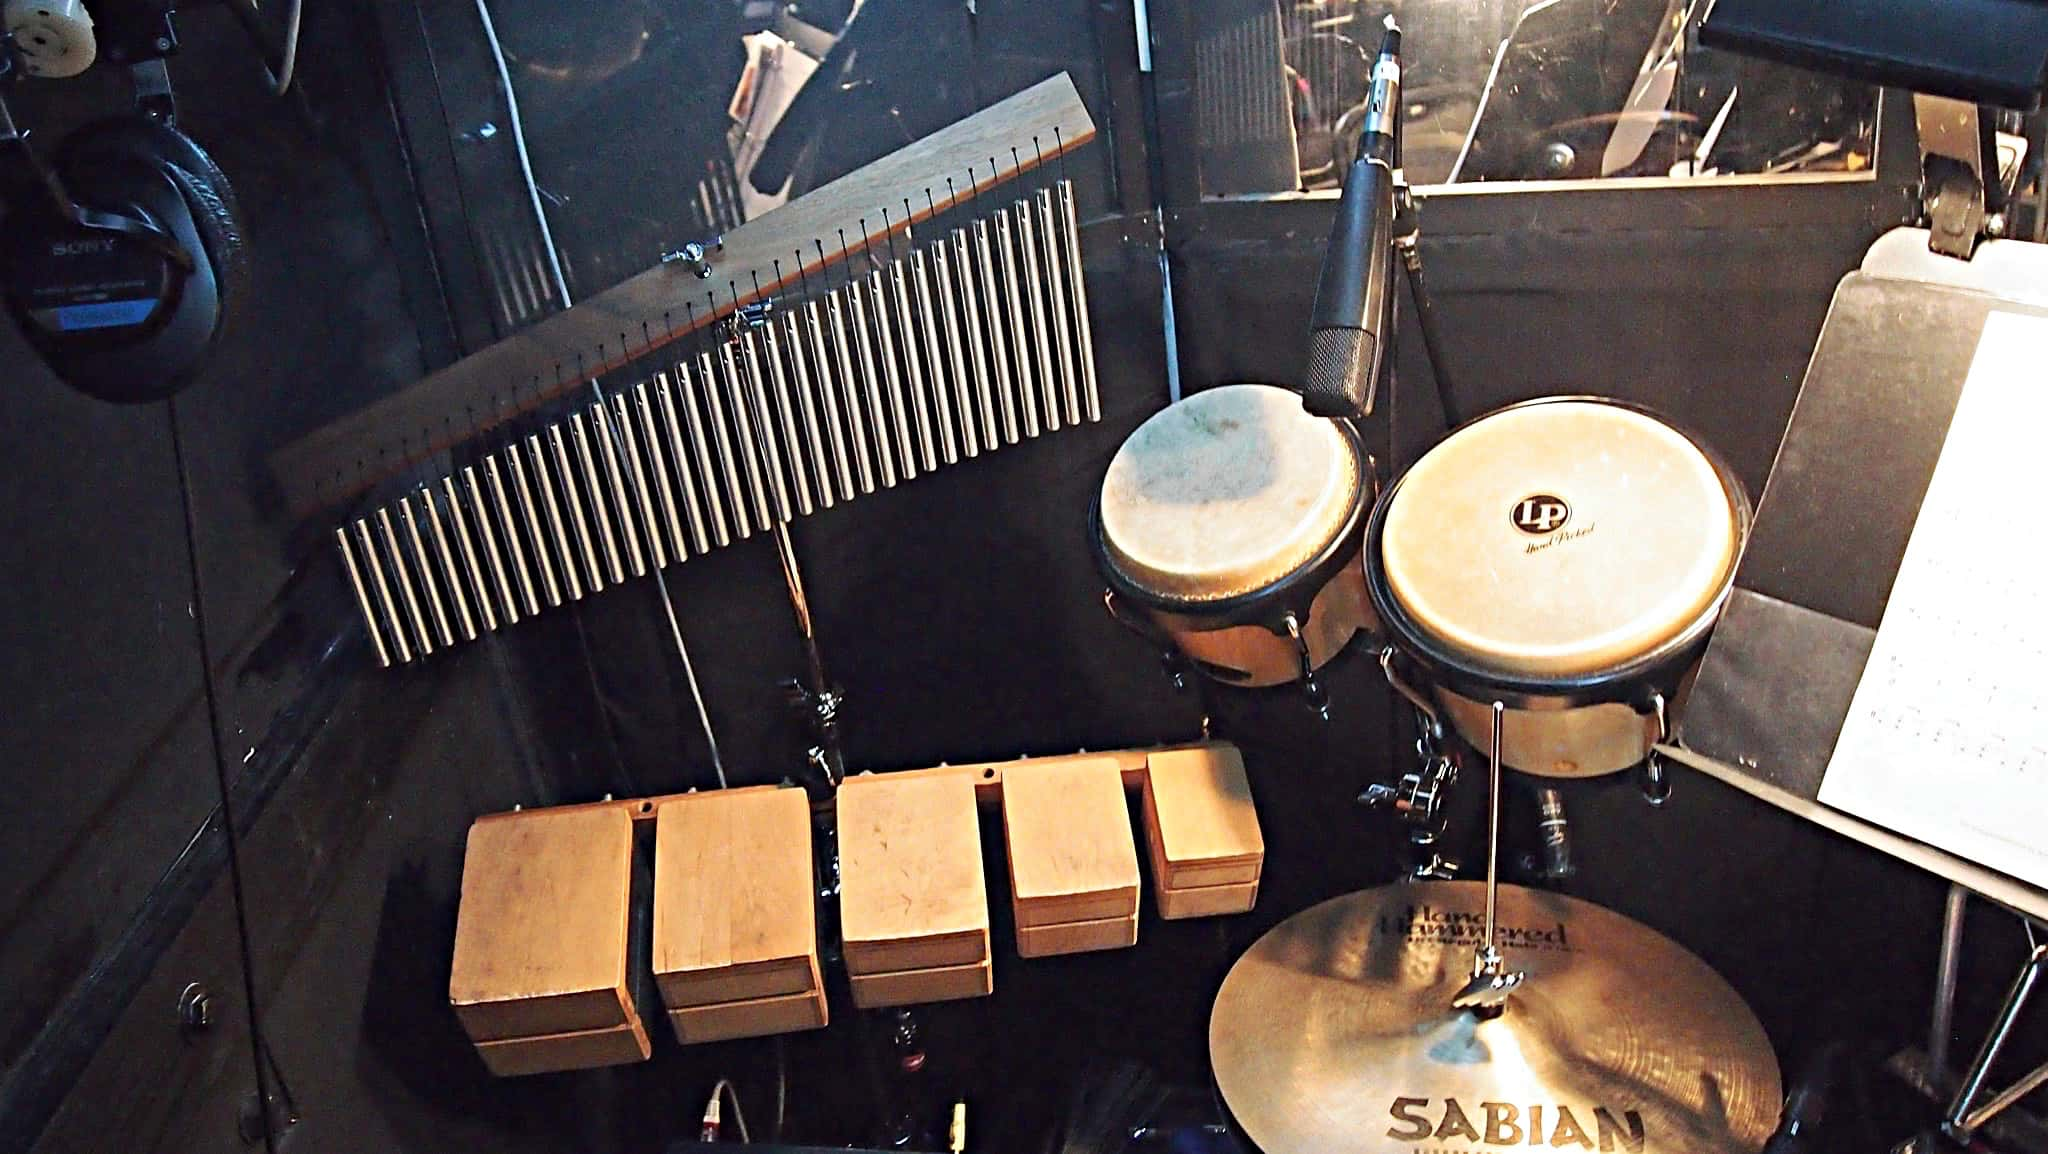 Alec Wilmart's drum set setup for How to Succeed in Business Without Really Trying at the 5th Avenue Theatre in Seattle, Washington.